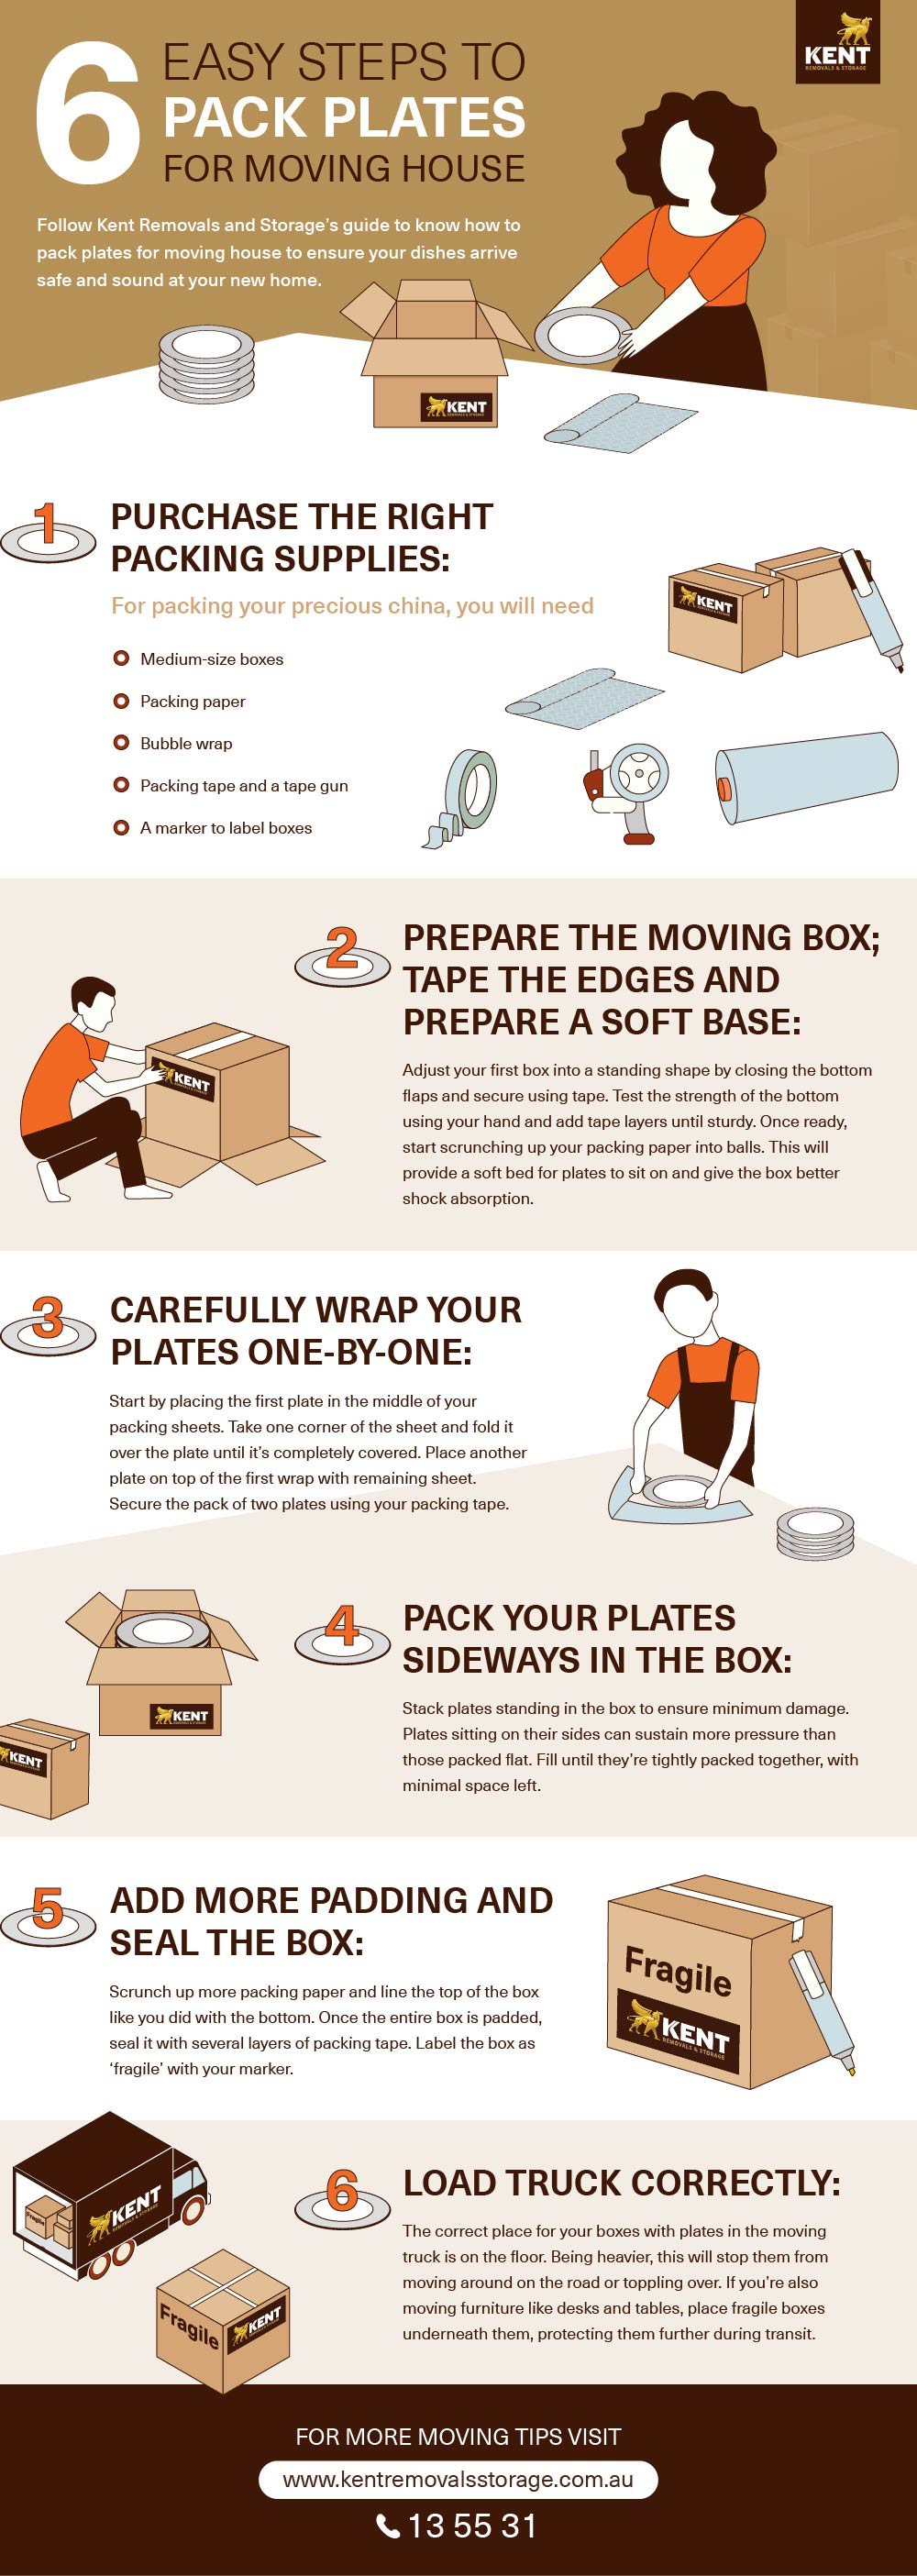 6 Easy Steps To Pack Plates for Moving House image